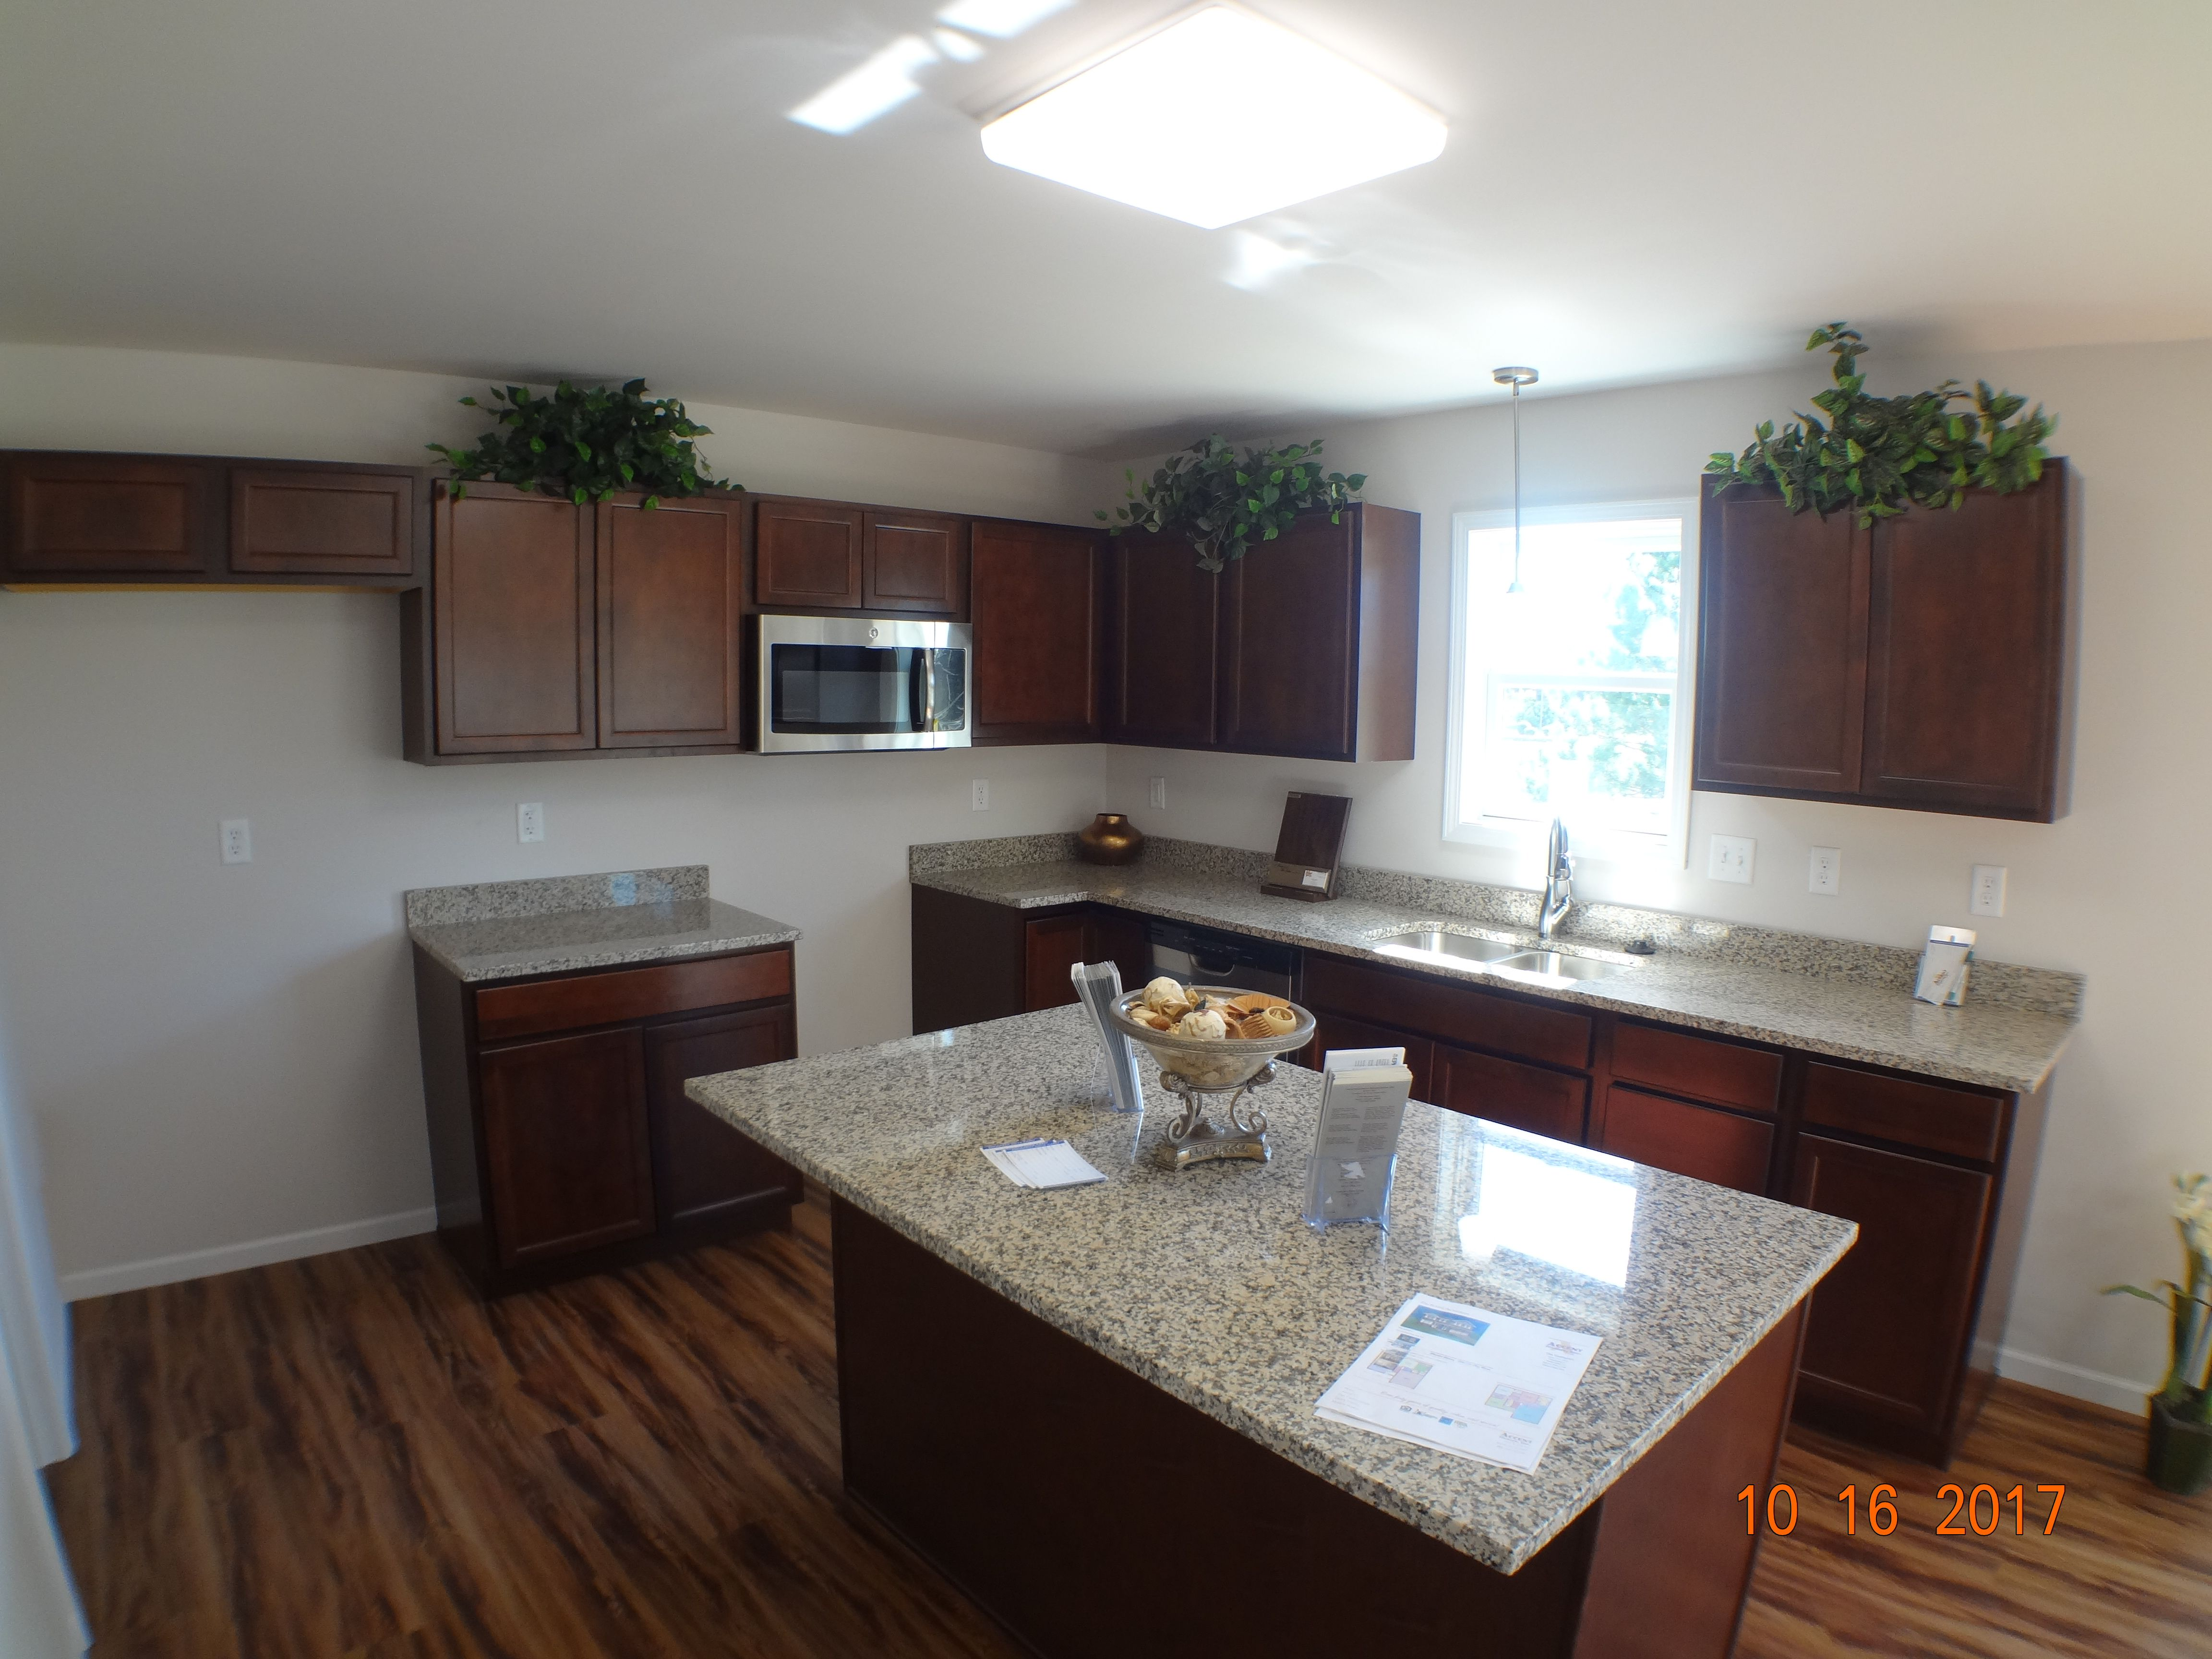 Kitchen featured in the Smithport By Accent Homes Inc. in Gary, IN